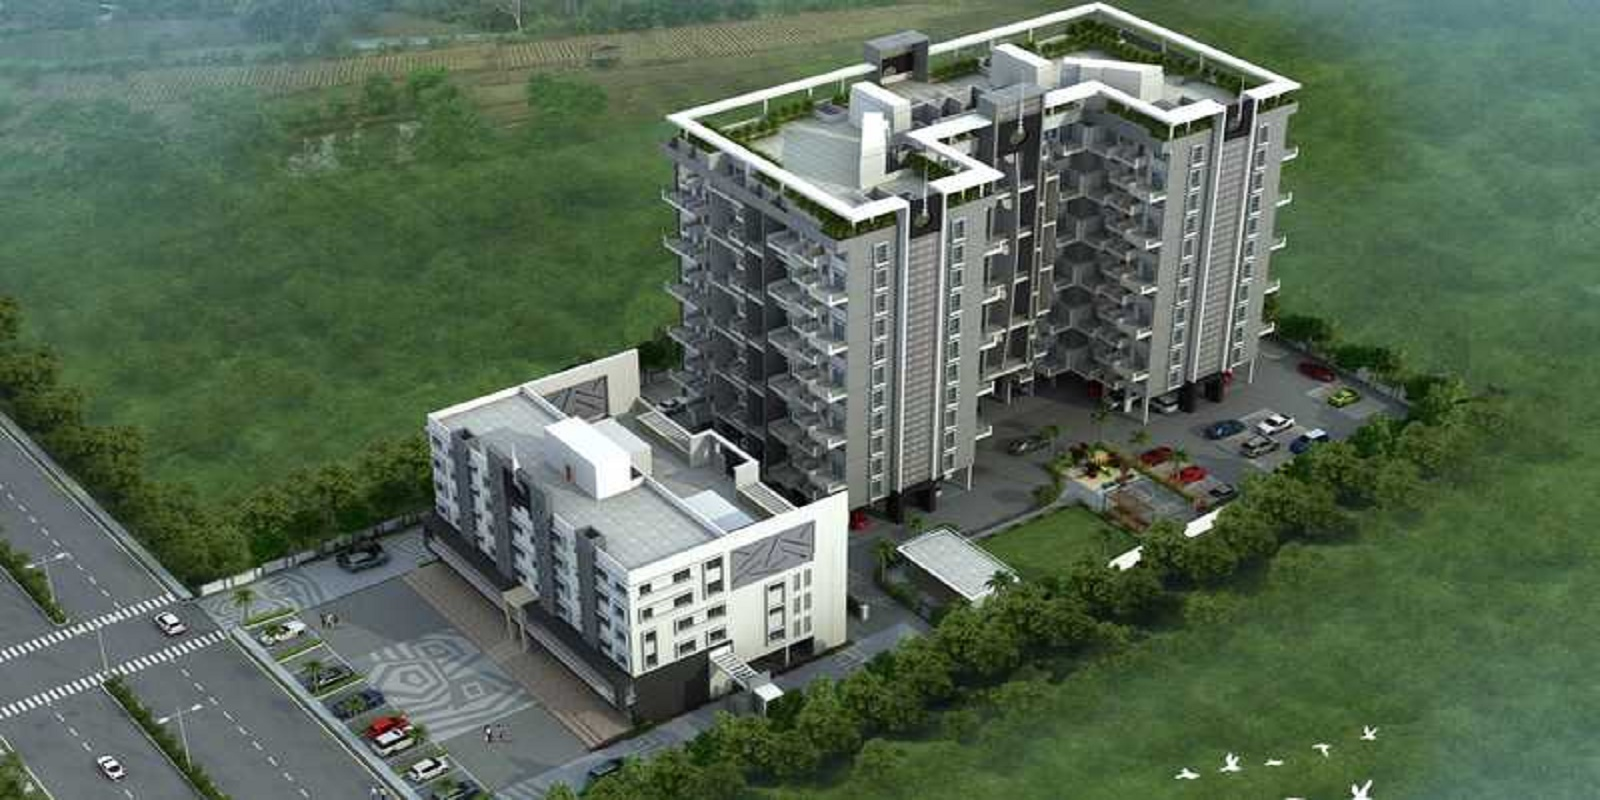 kamalraj nishigandh b and c building project project large image1